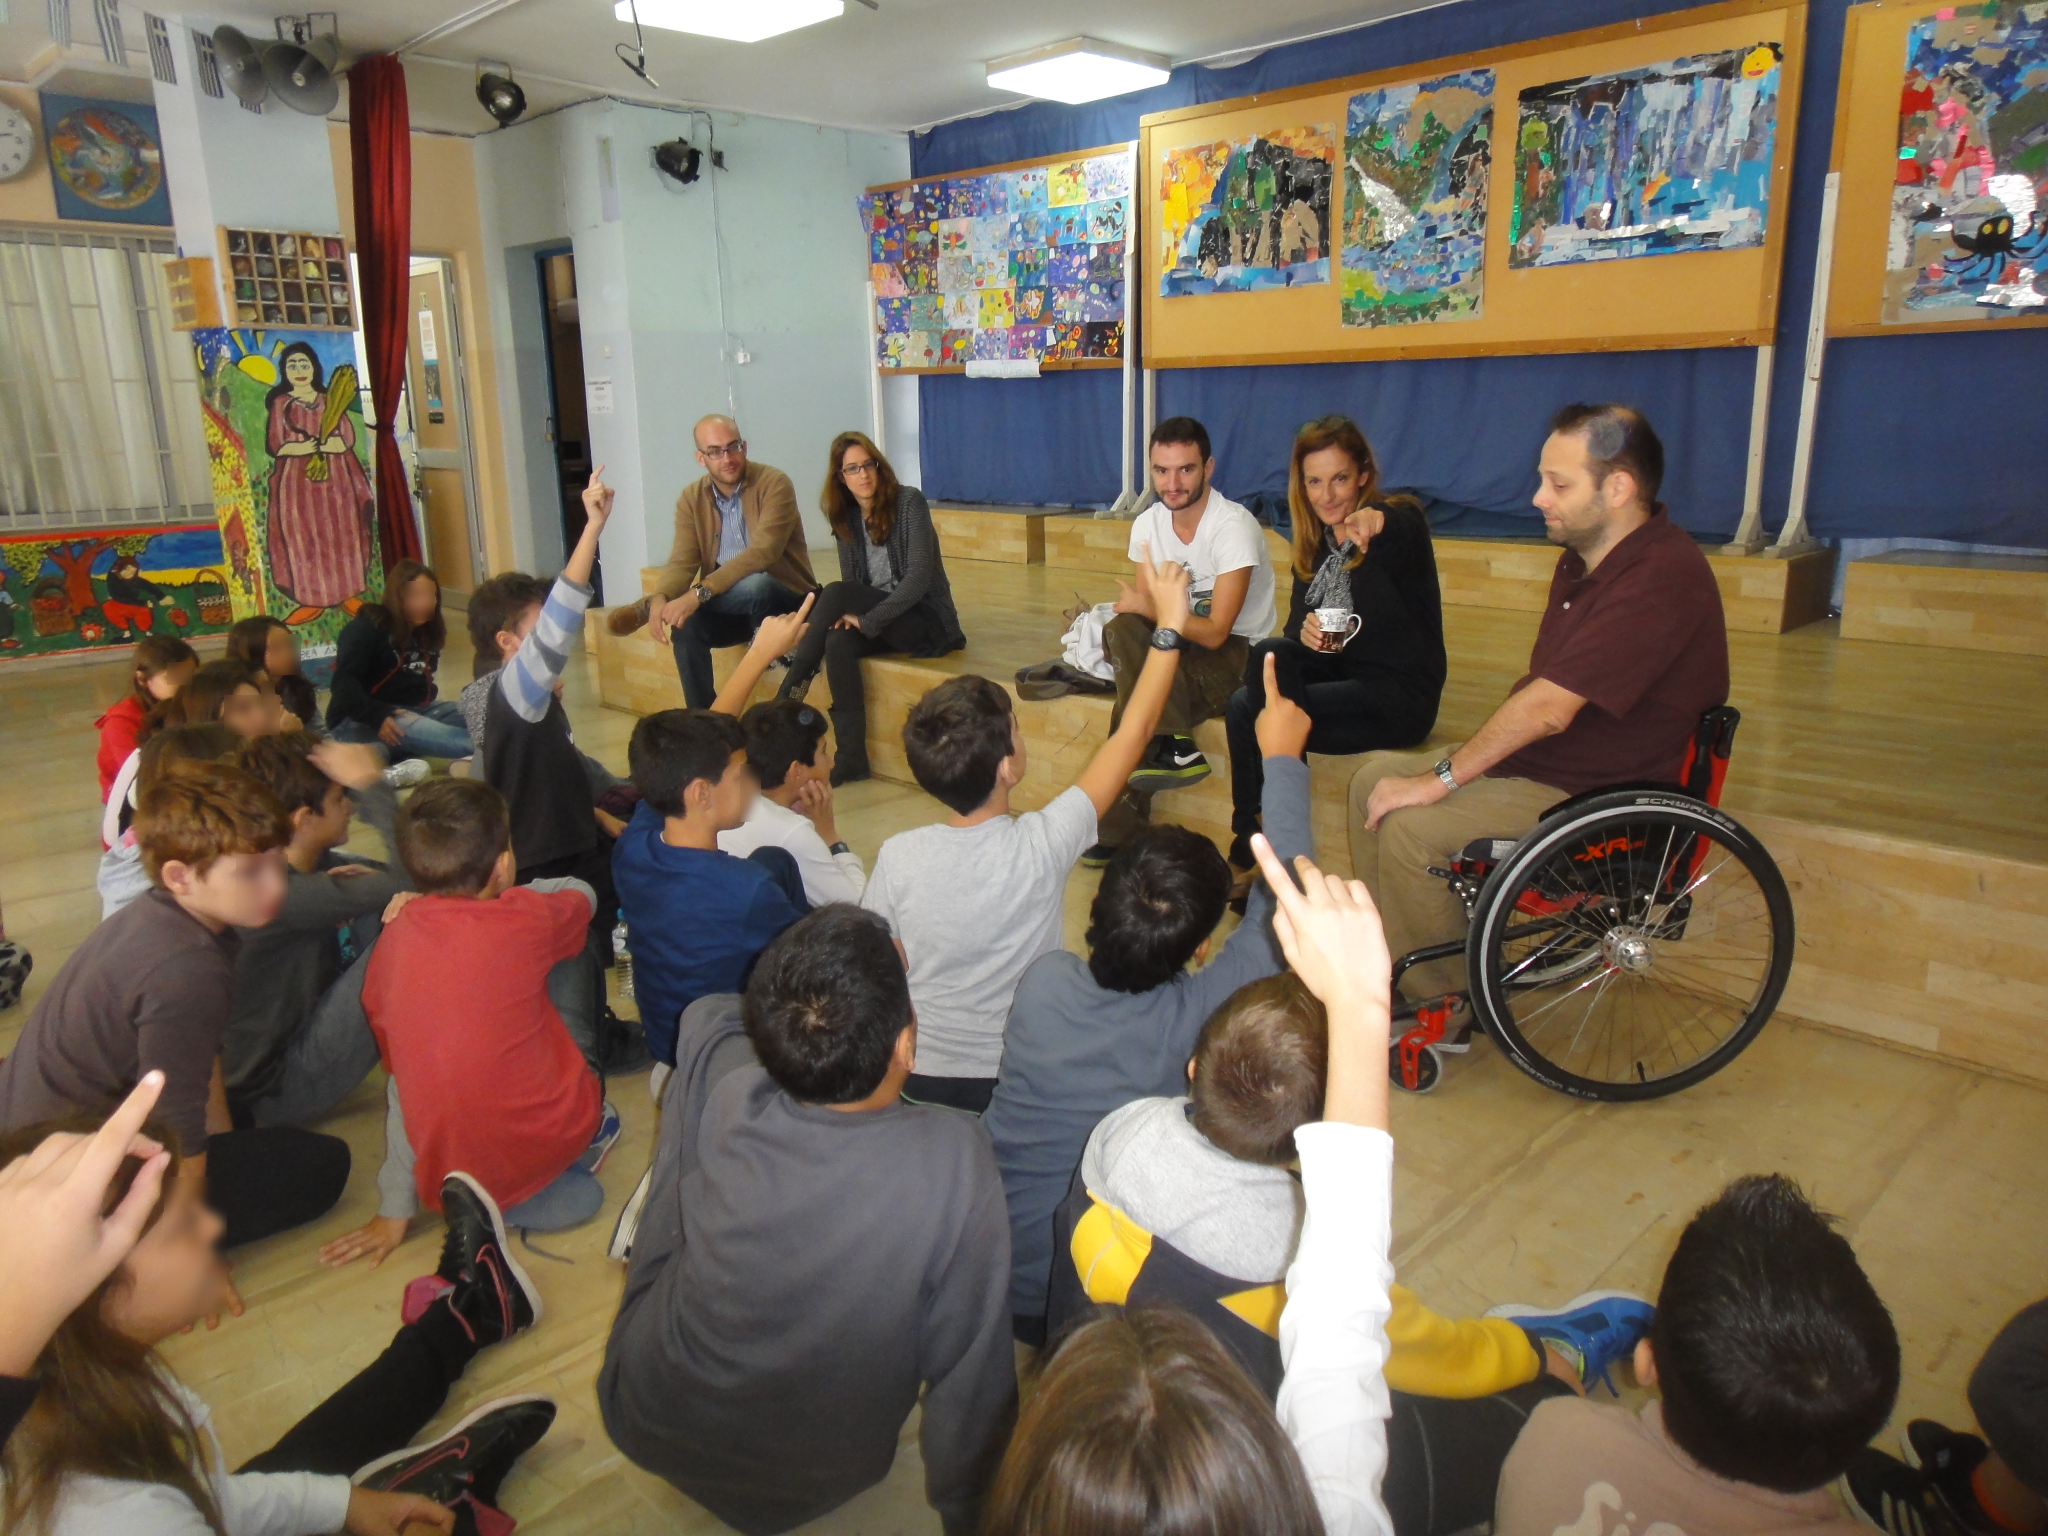 A man in a wheel chair giving a presentation to a group of students